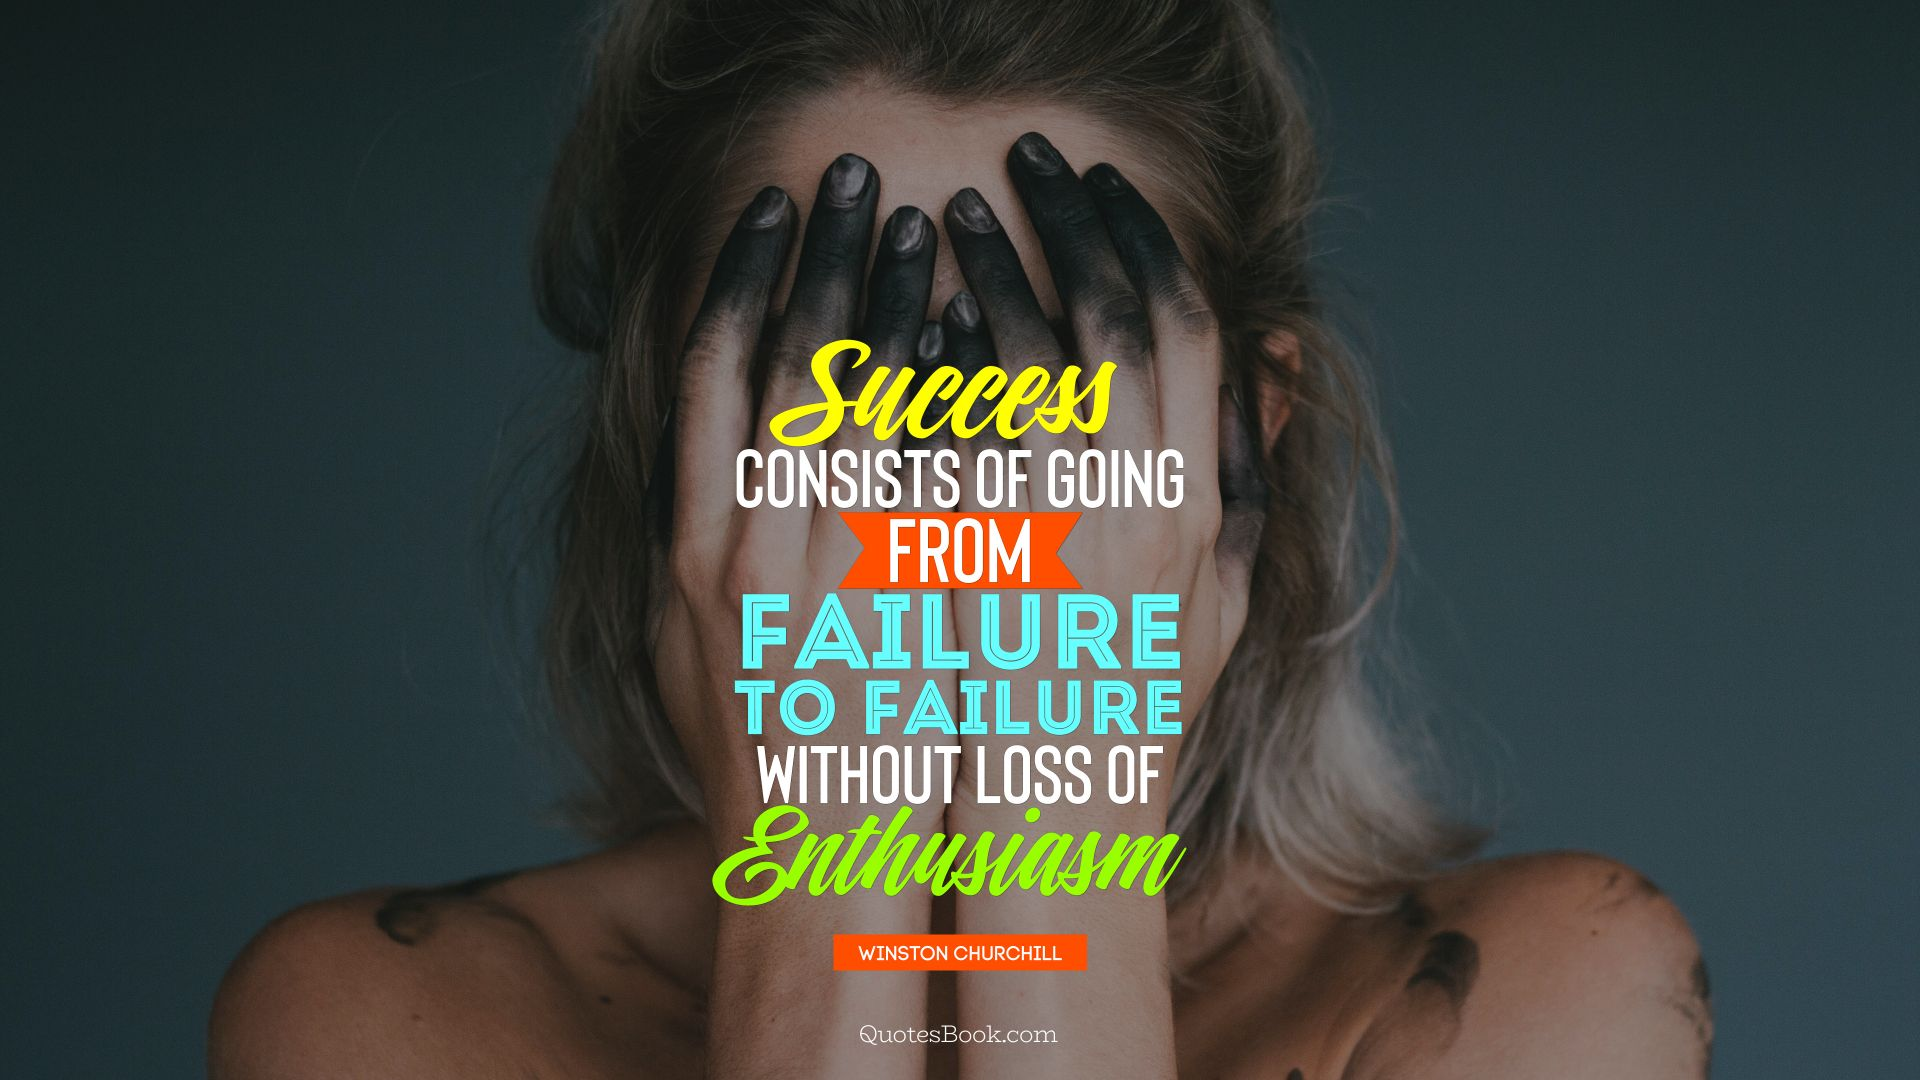 Success consists of going from failure to failure without loss of enthusiasm. - Quote by Winston Churchill